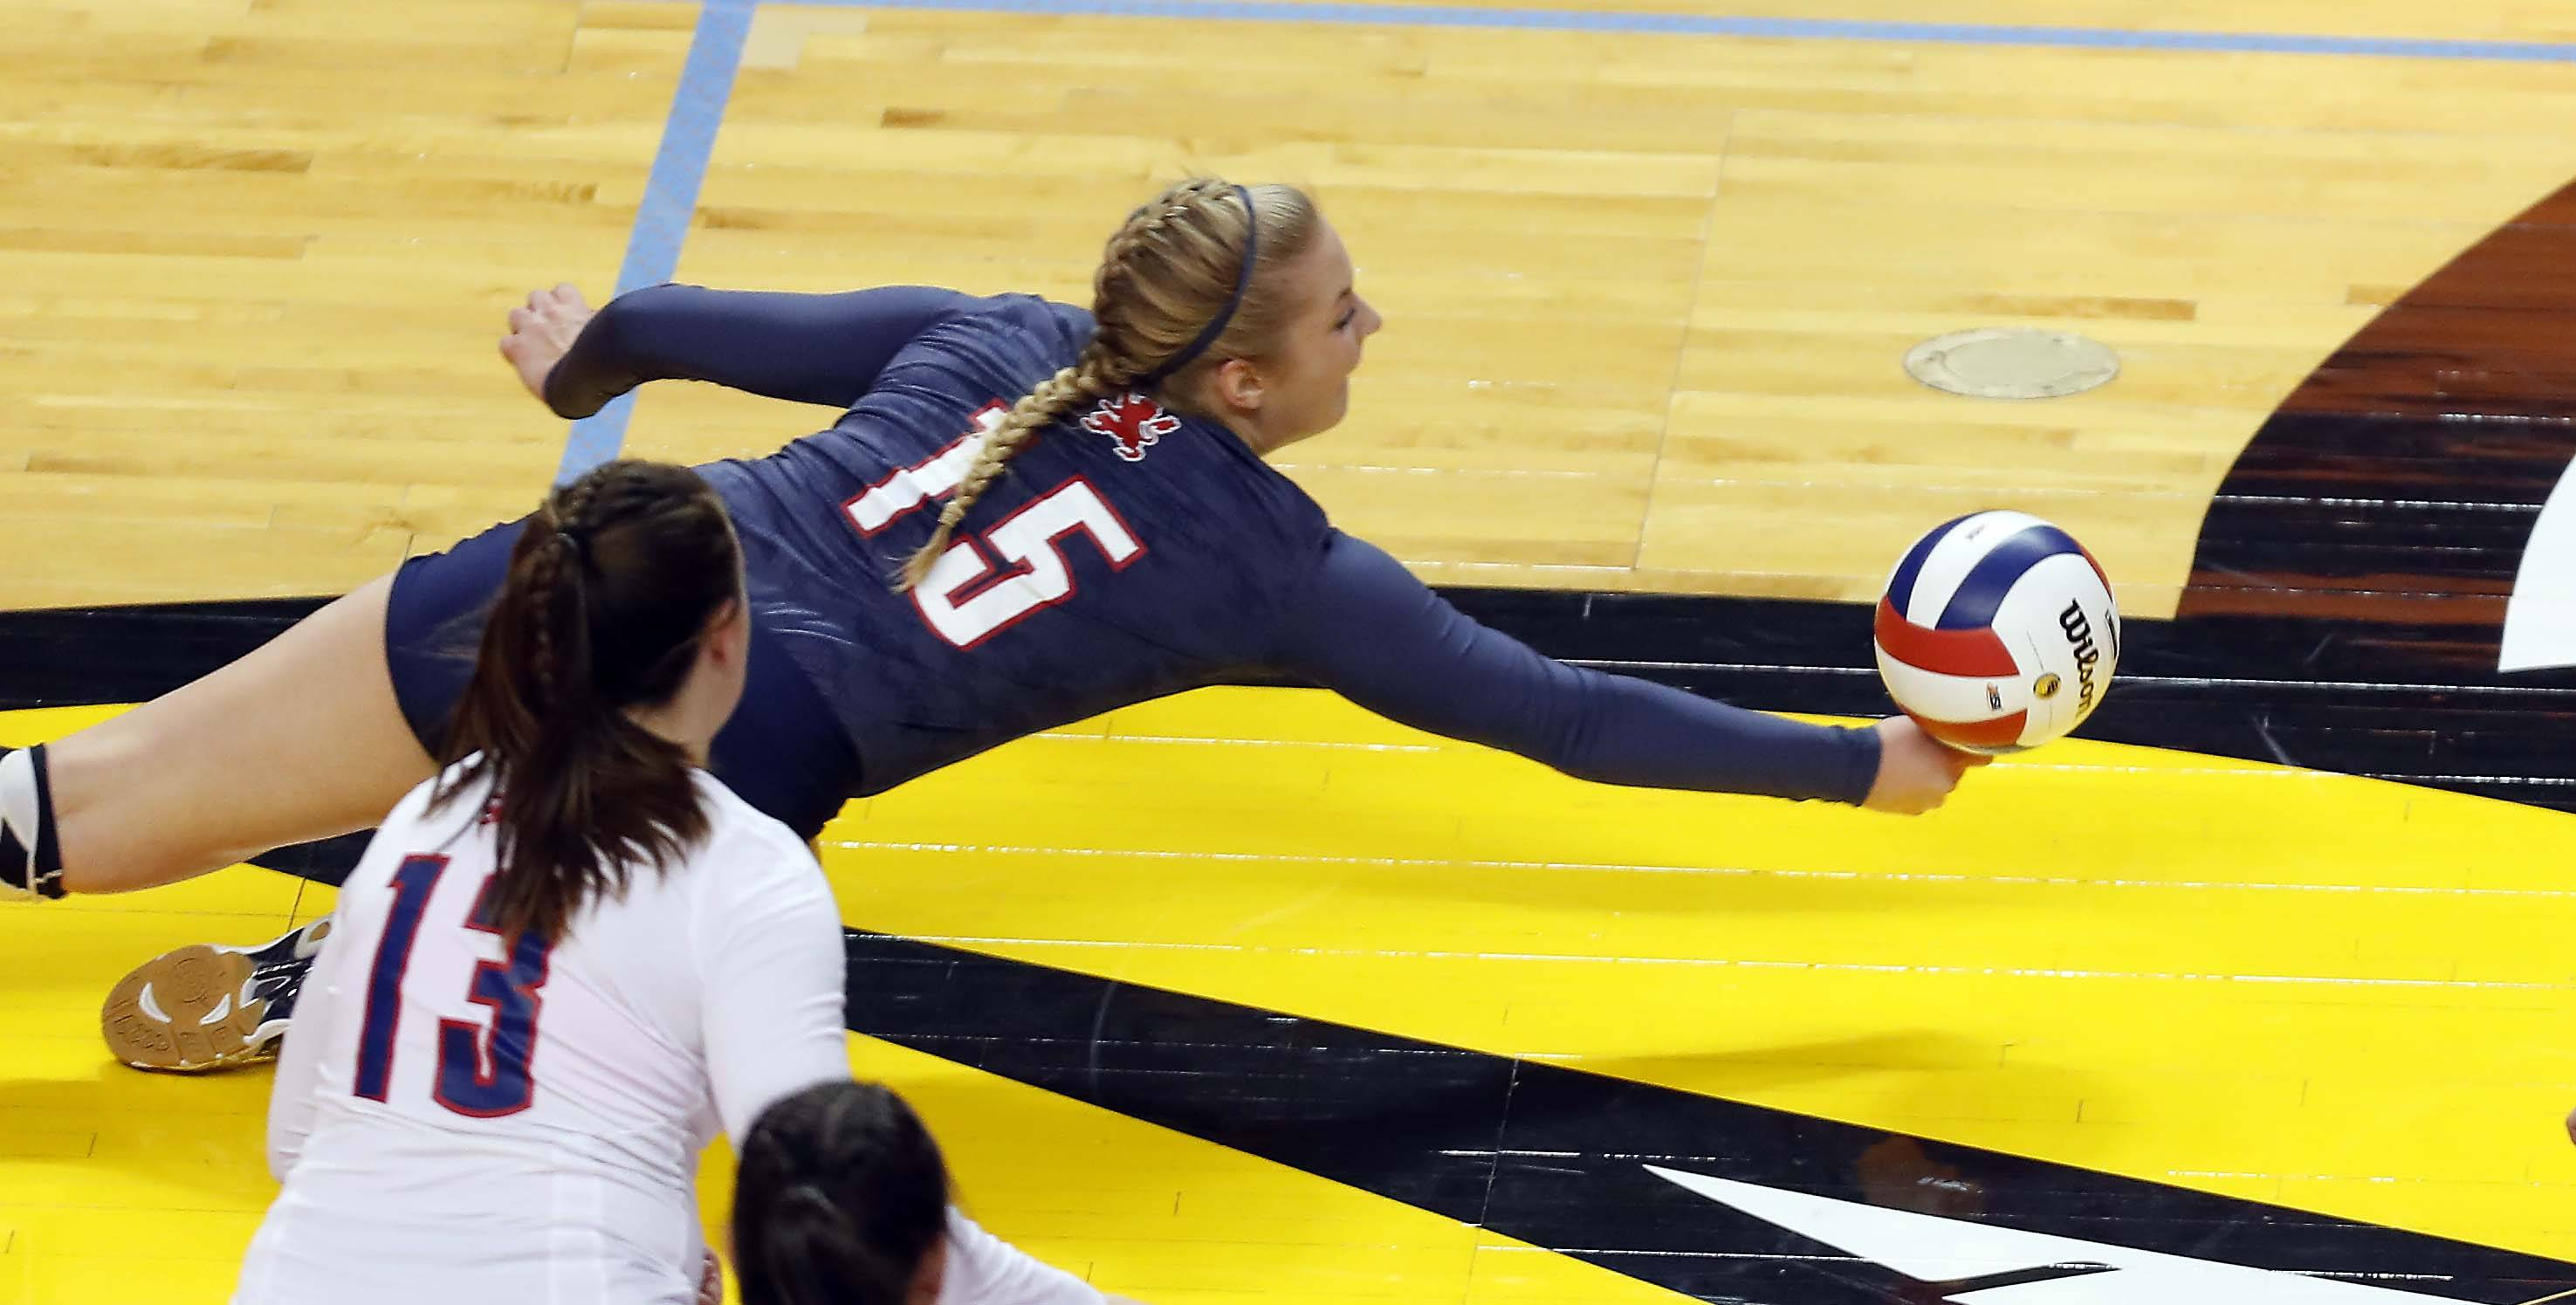 St. Viator's Carrie Leazer (15) with a huge dig in the semifinals of the IHSA Class 3A state girls volleyball tournament at Redbird Arena in Normal.